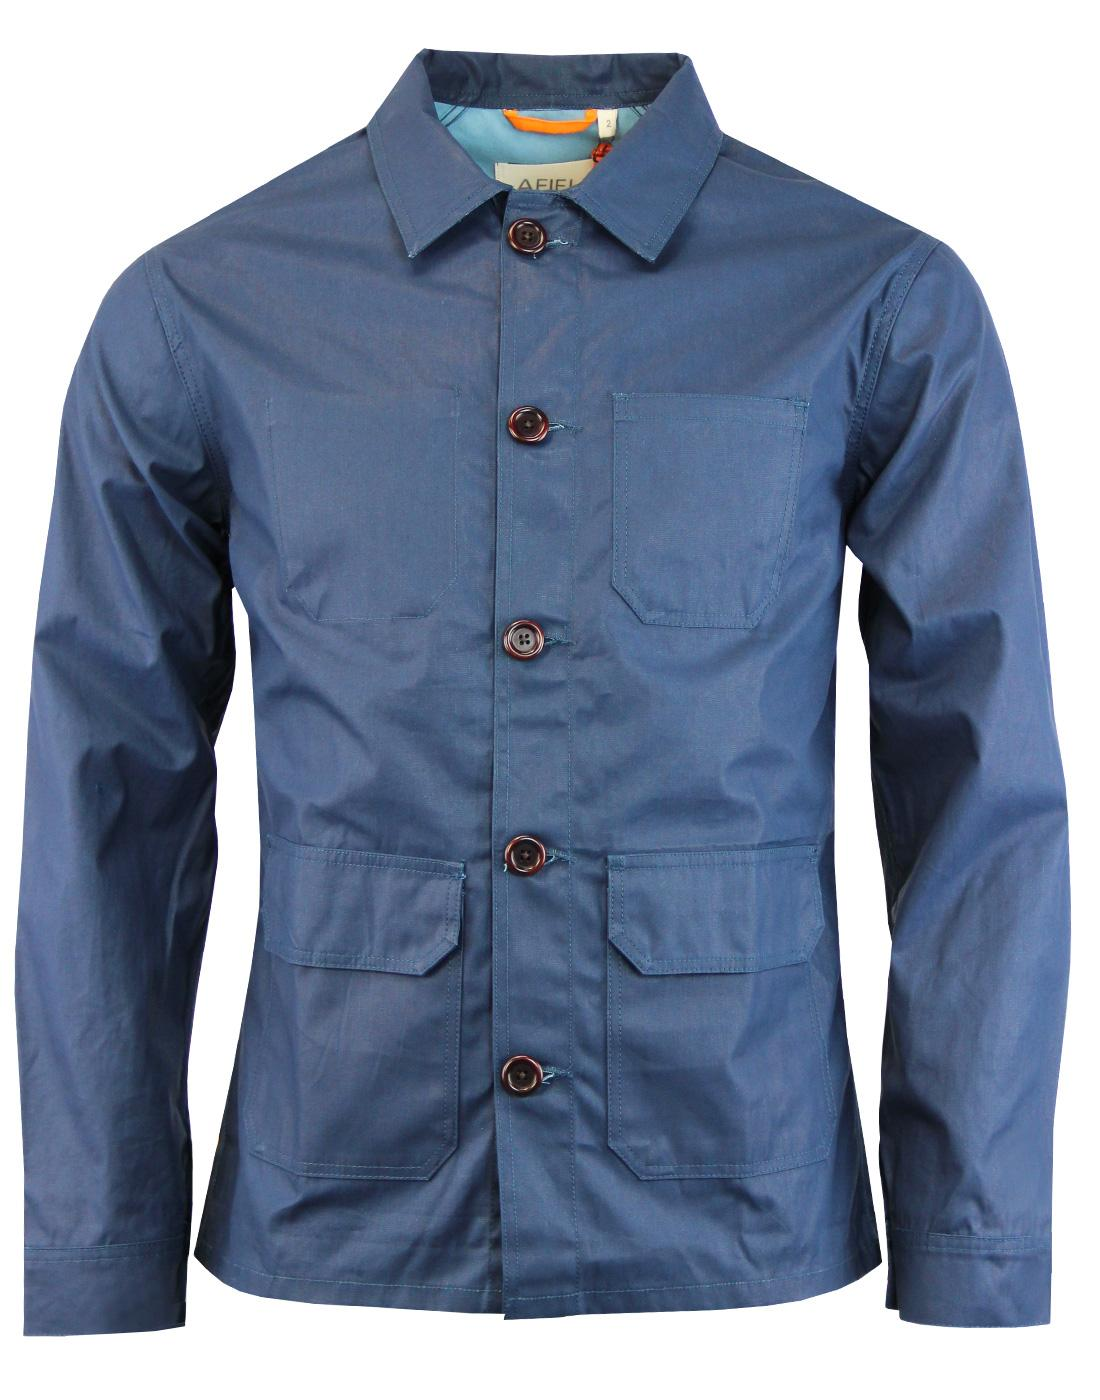 Porter AFIELD Retro Waxed Cotton Overshirt Jacket